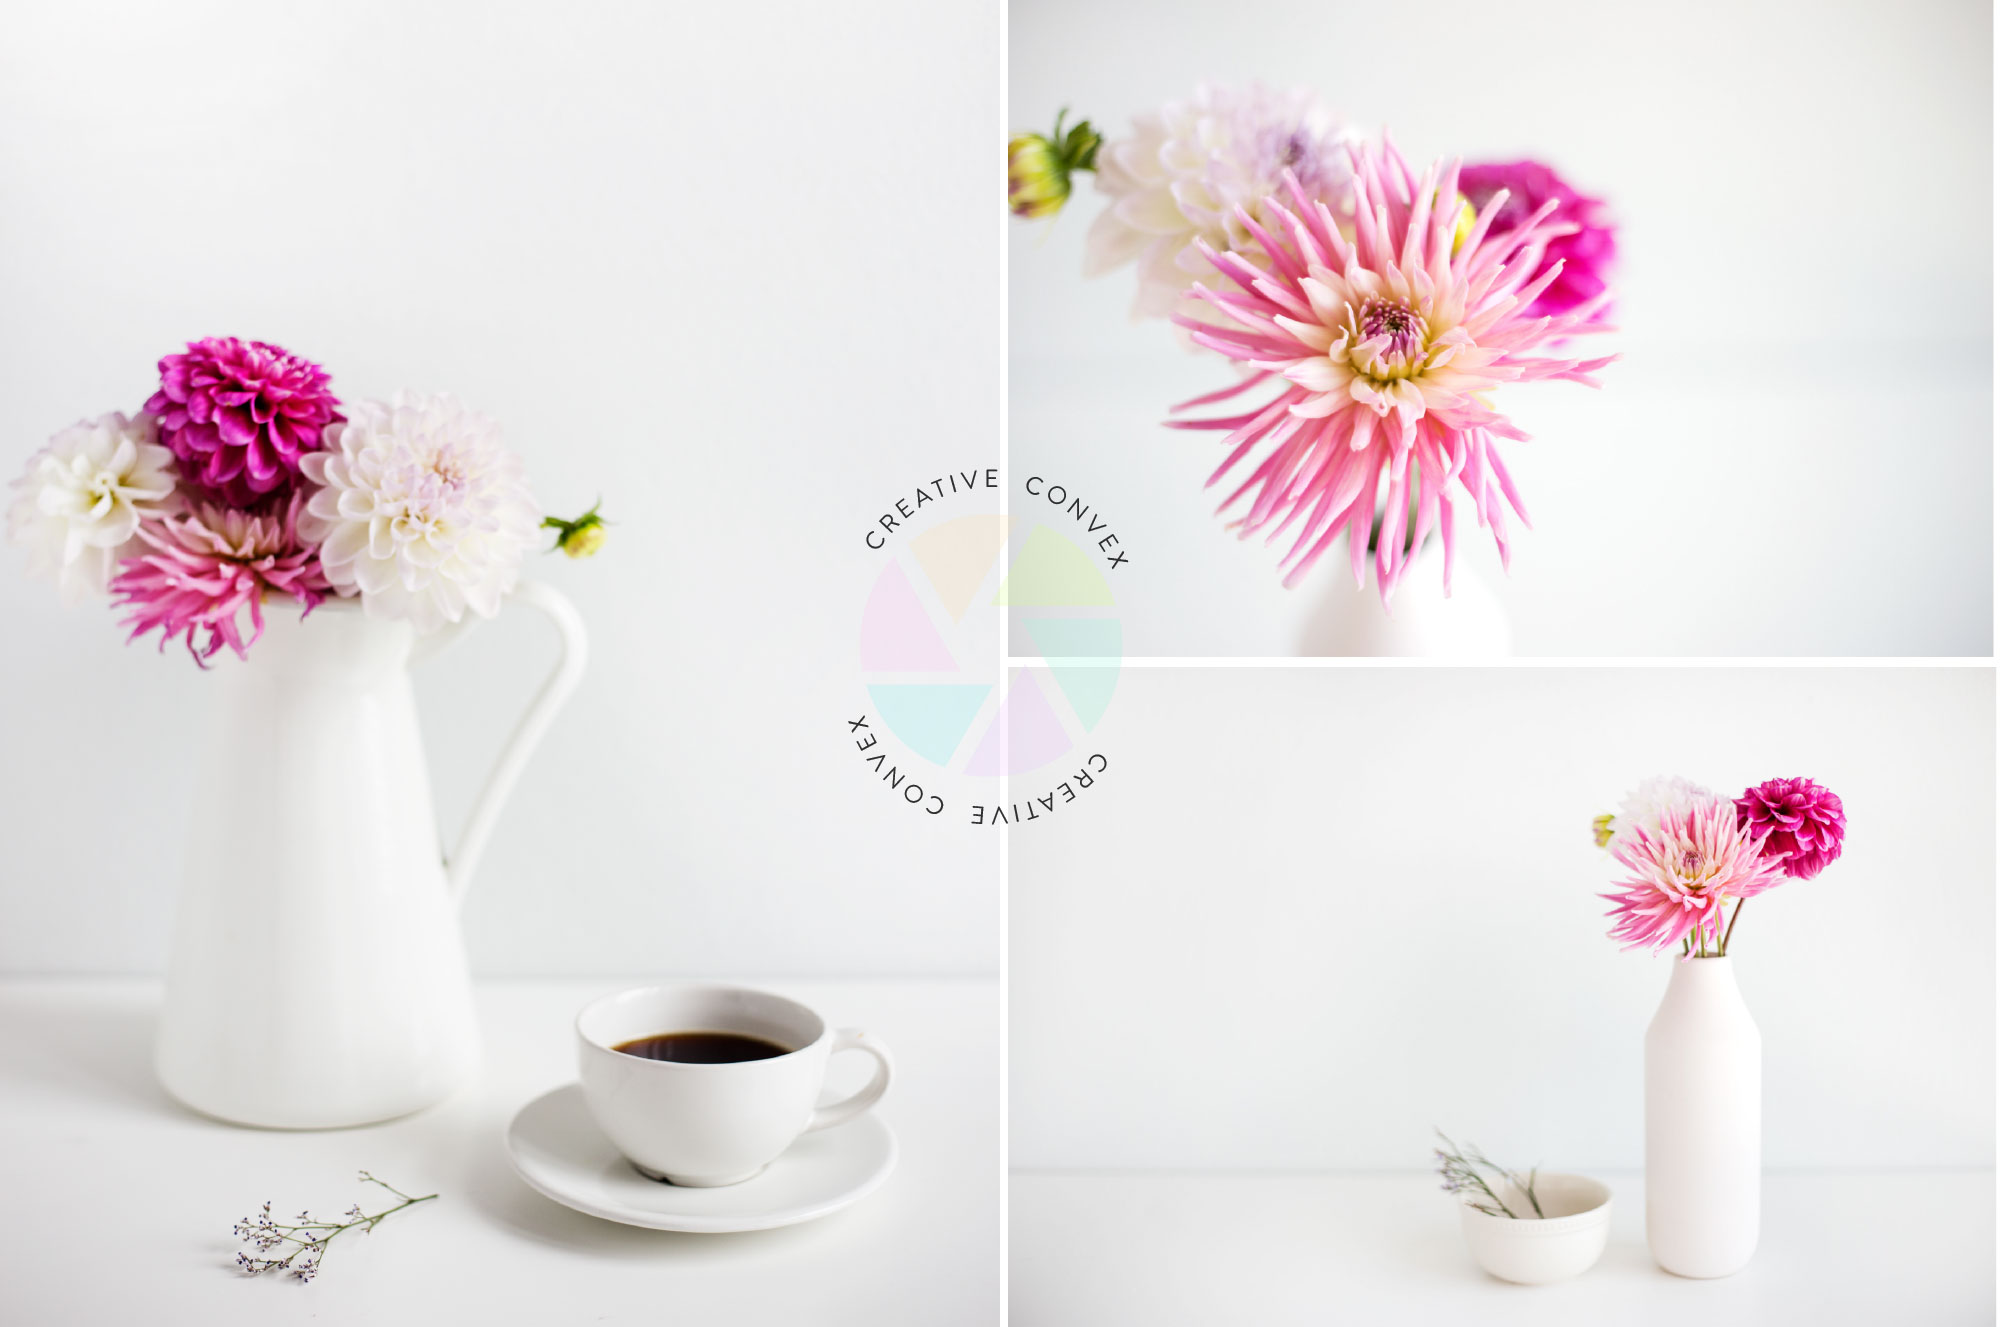 Struggling to find the right photos for your brand? The Creative Convex shop is your perfect companion to elevate your brand and business through high quality visuals! Click to check it out here now >>